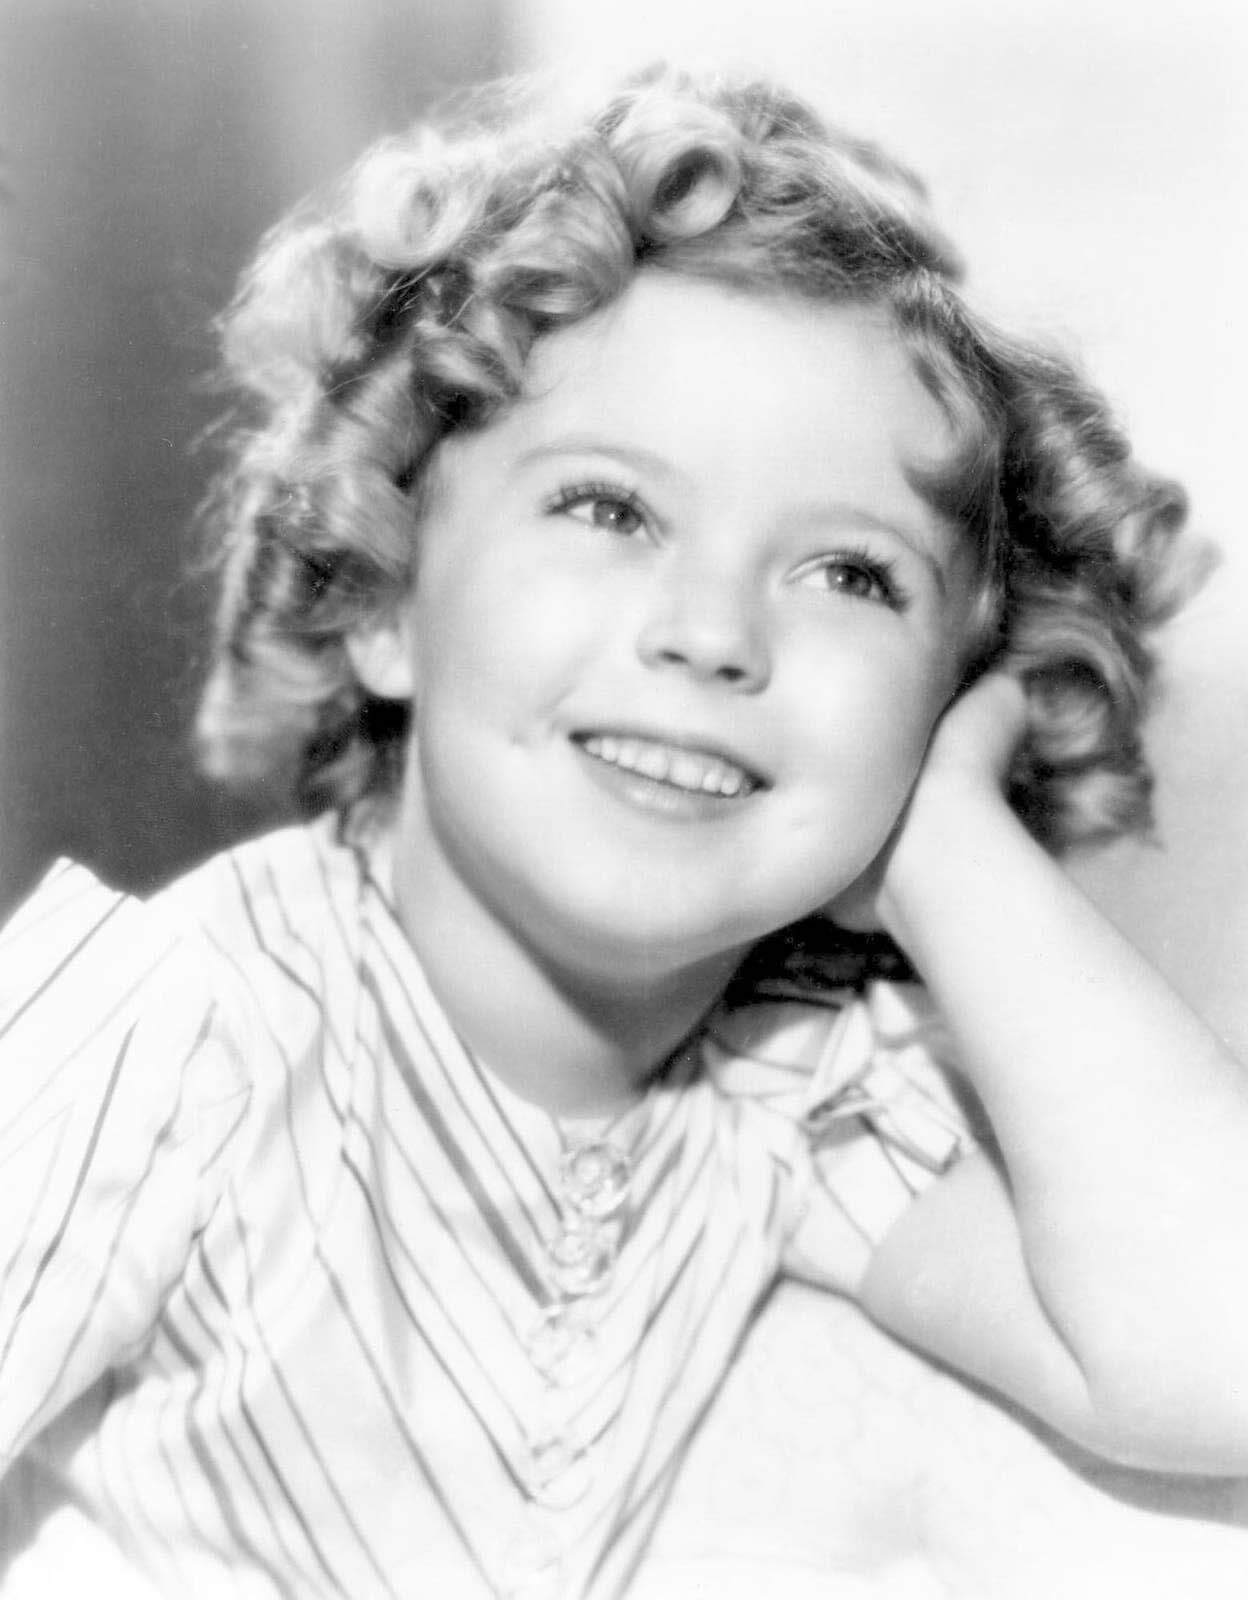 Child Actor - Shirley Temple - Child Labor Laws - StudioBinder Software